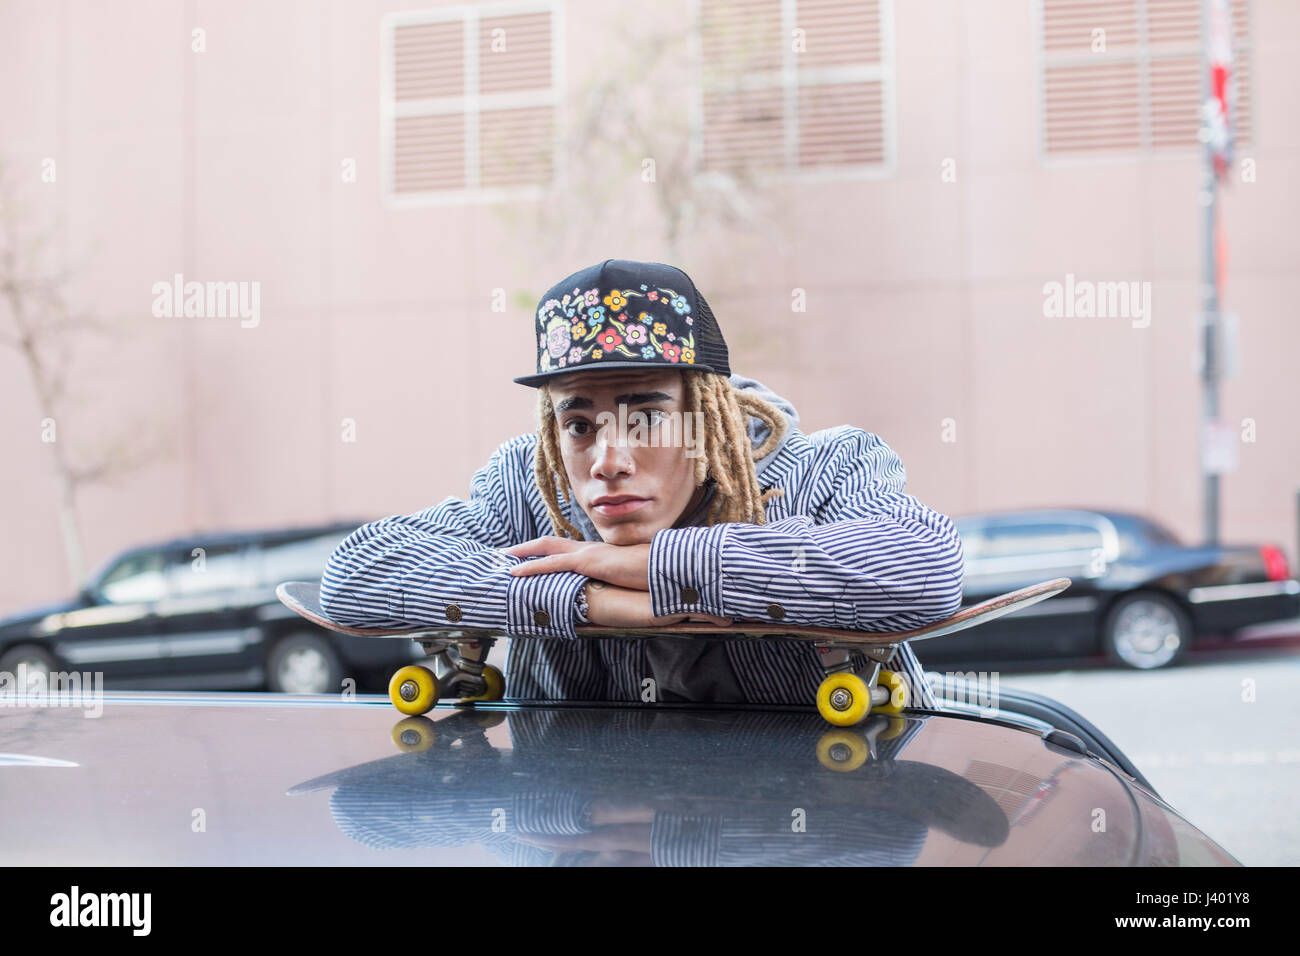 Young man skateboarding. - Stock Image